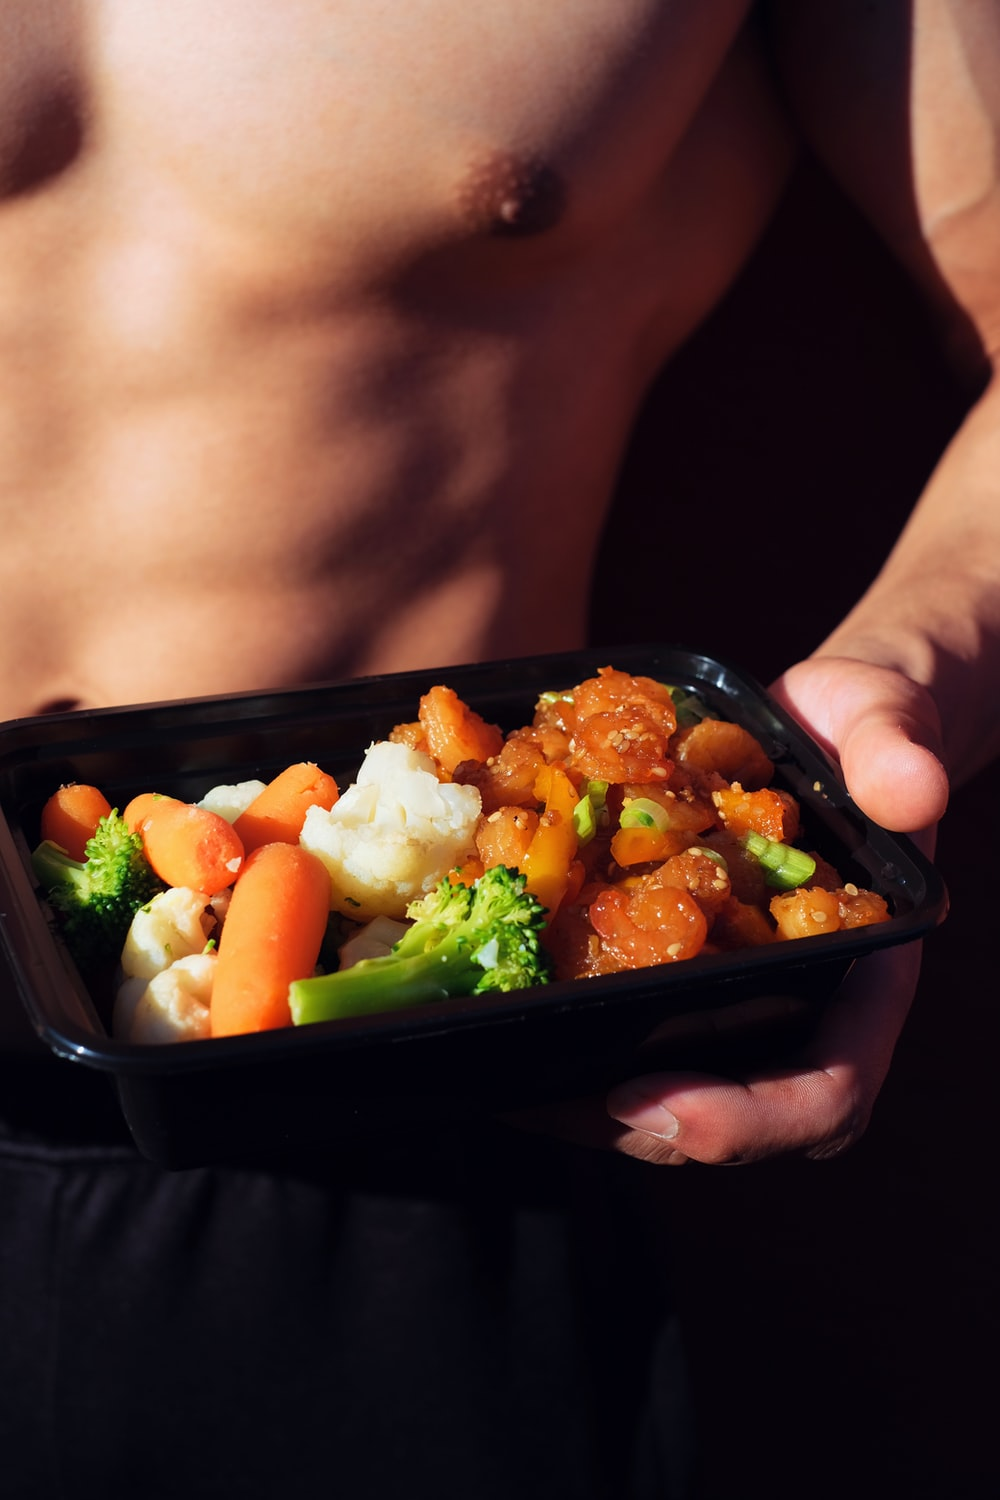 person holding black plastic container with food